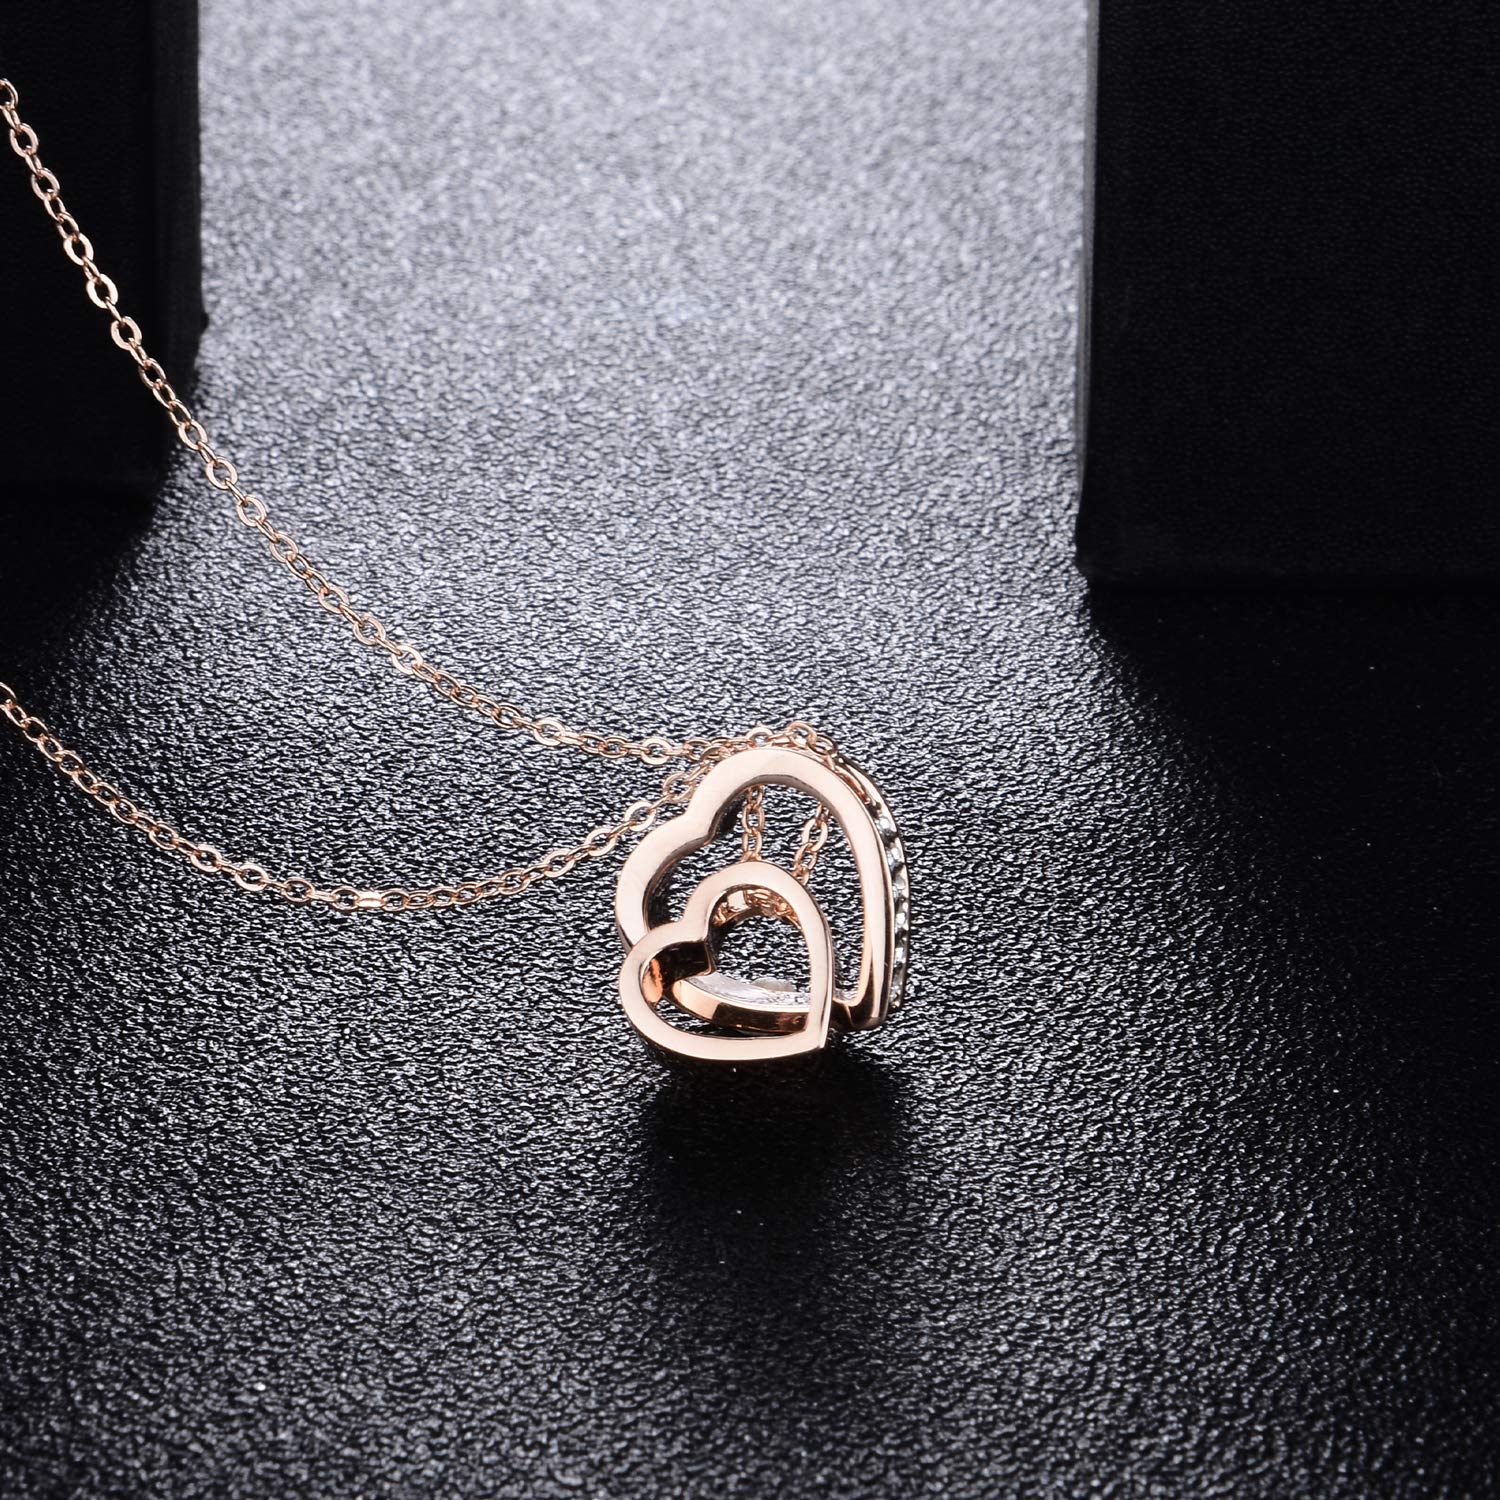 Jewellery for Women Love Heart Shaped Necklace Gift for Women Pendant Necklace for Her, Gifts for Her White Elegant Jewellery Gift Box